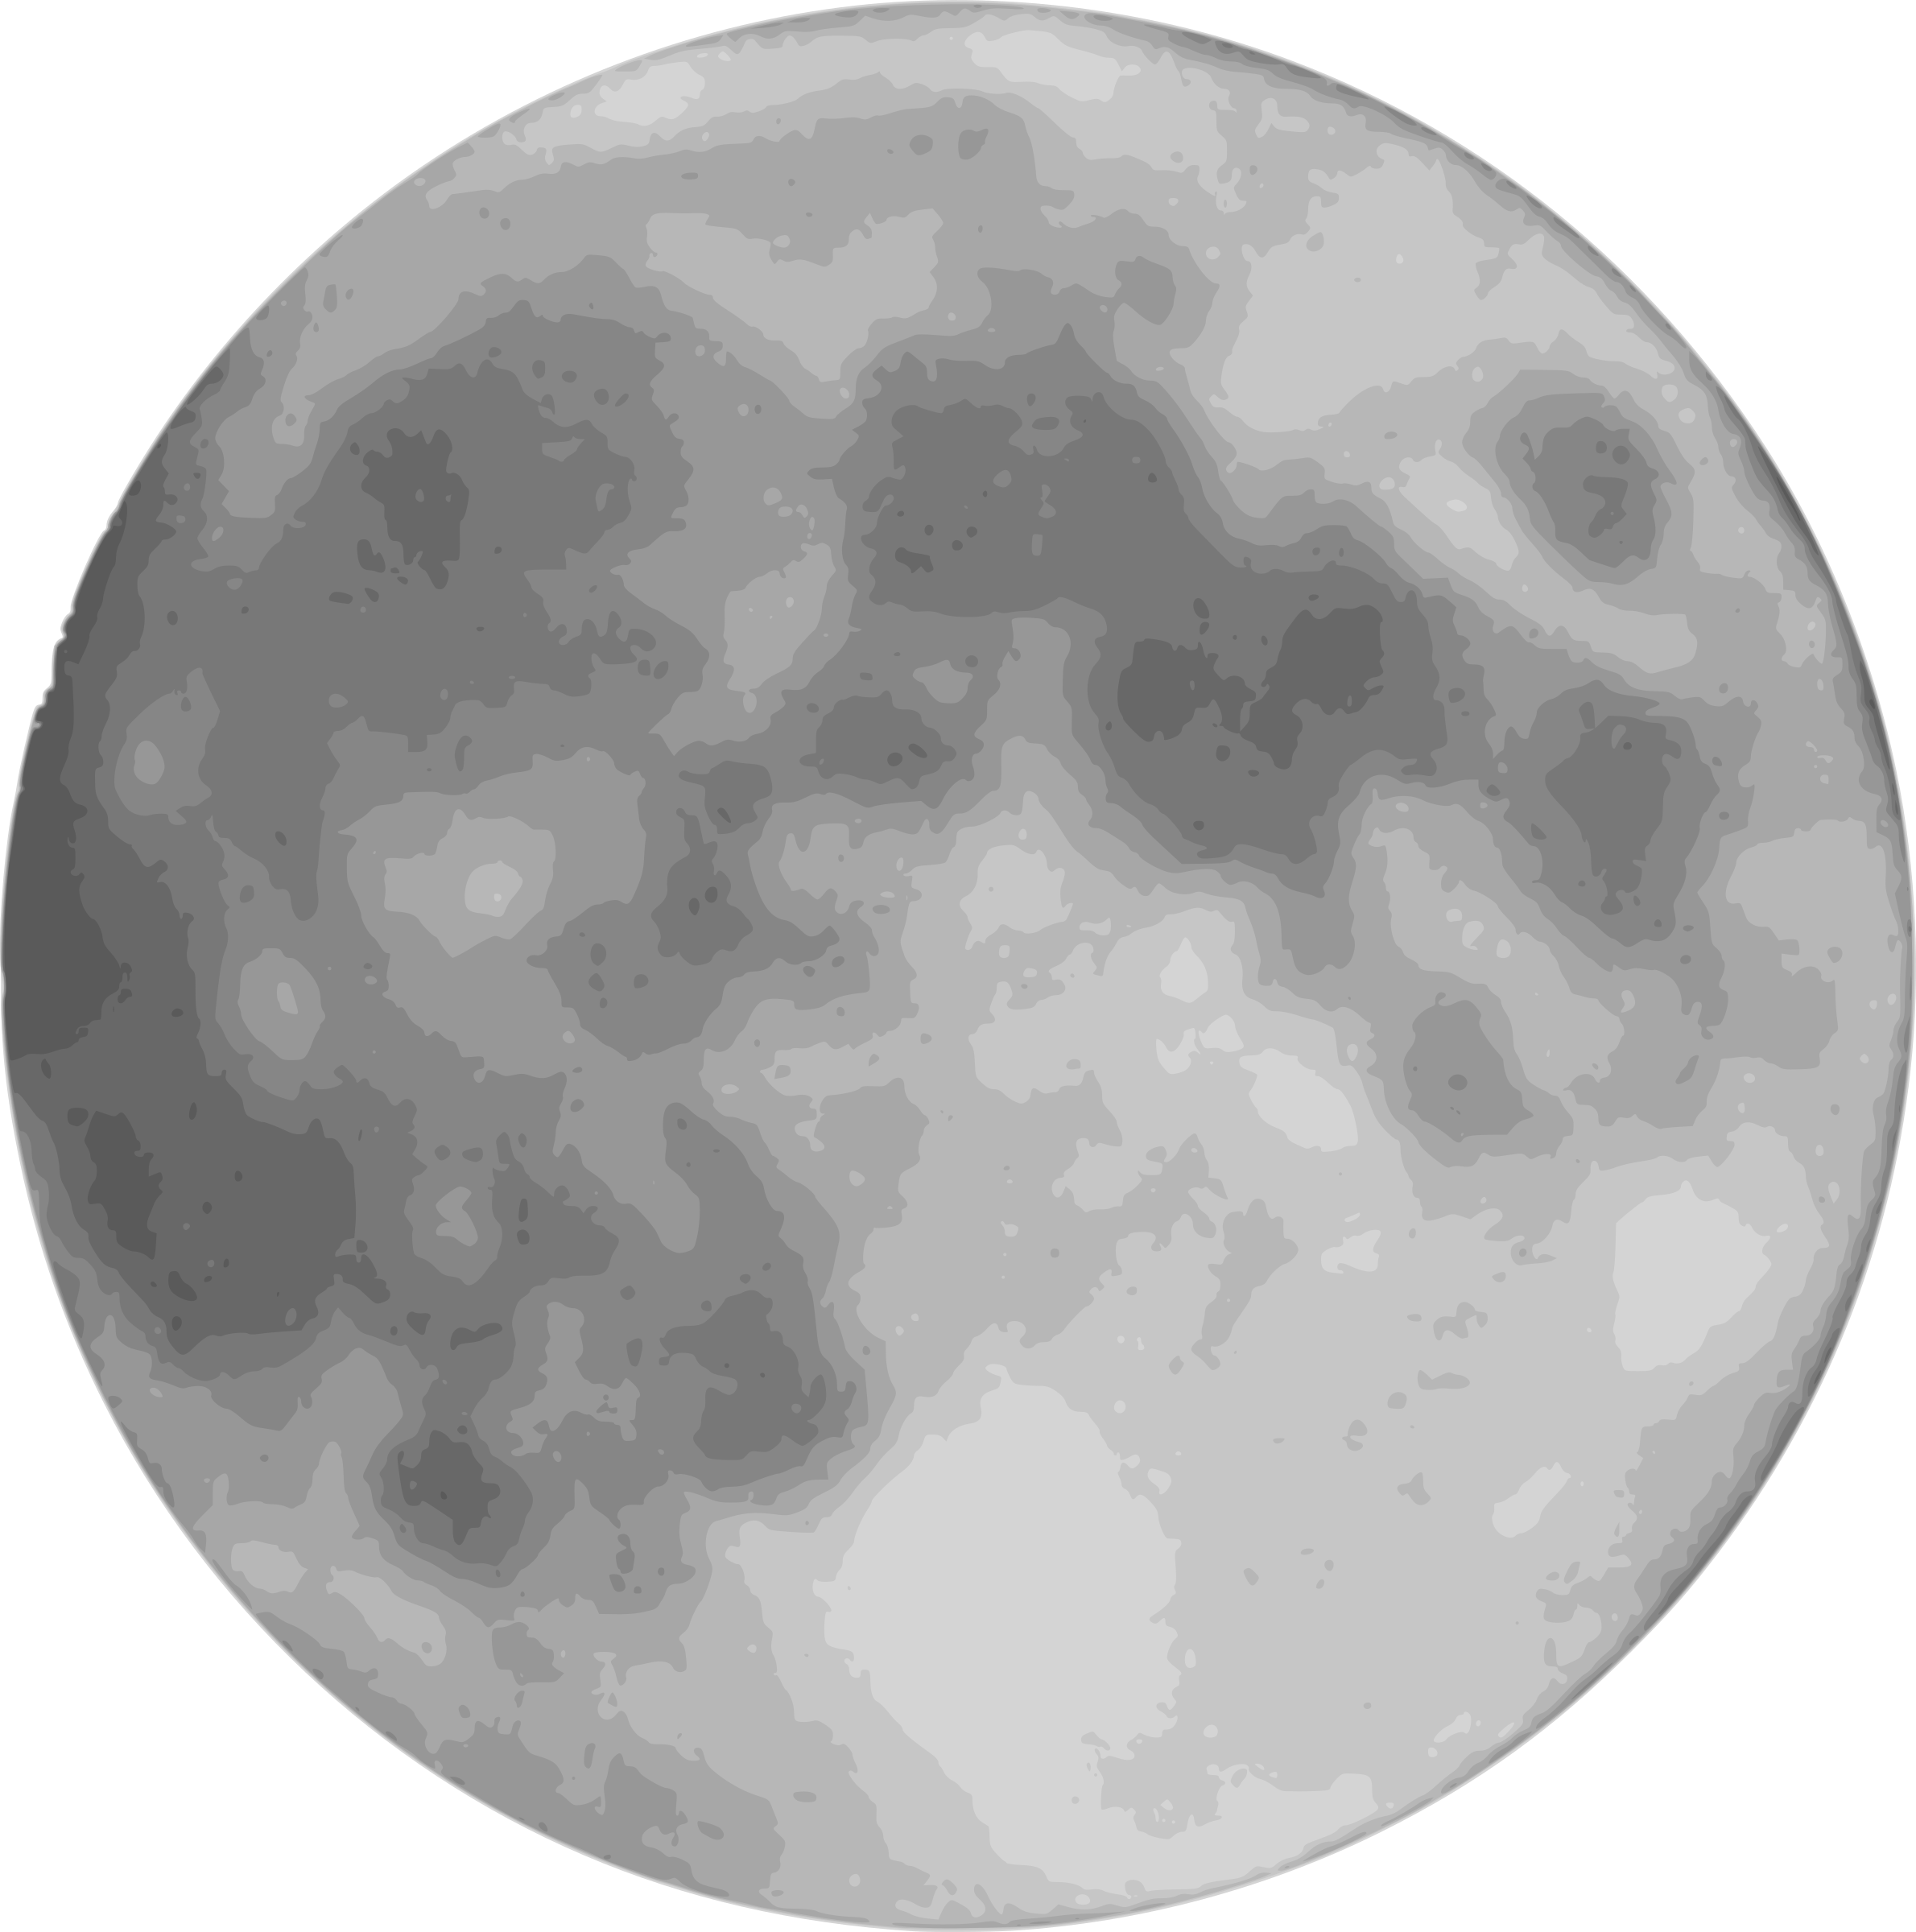 Moon clip art png. Images free download